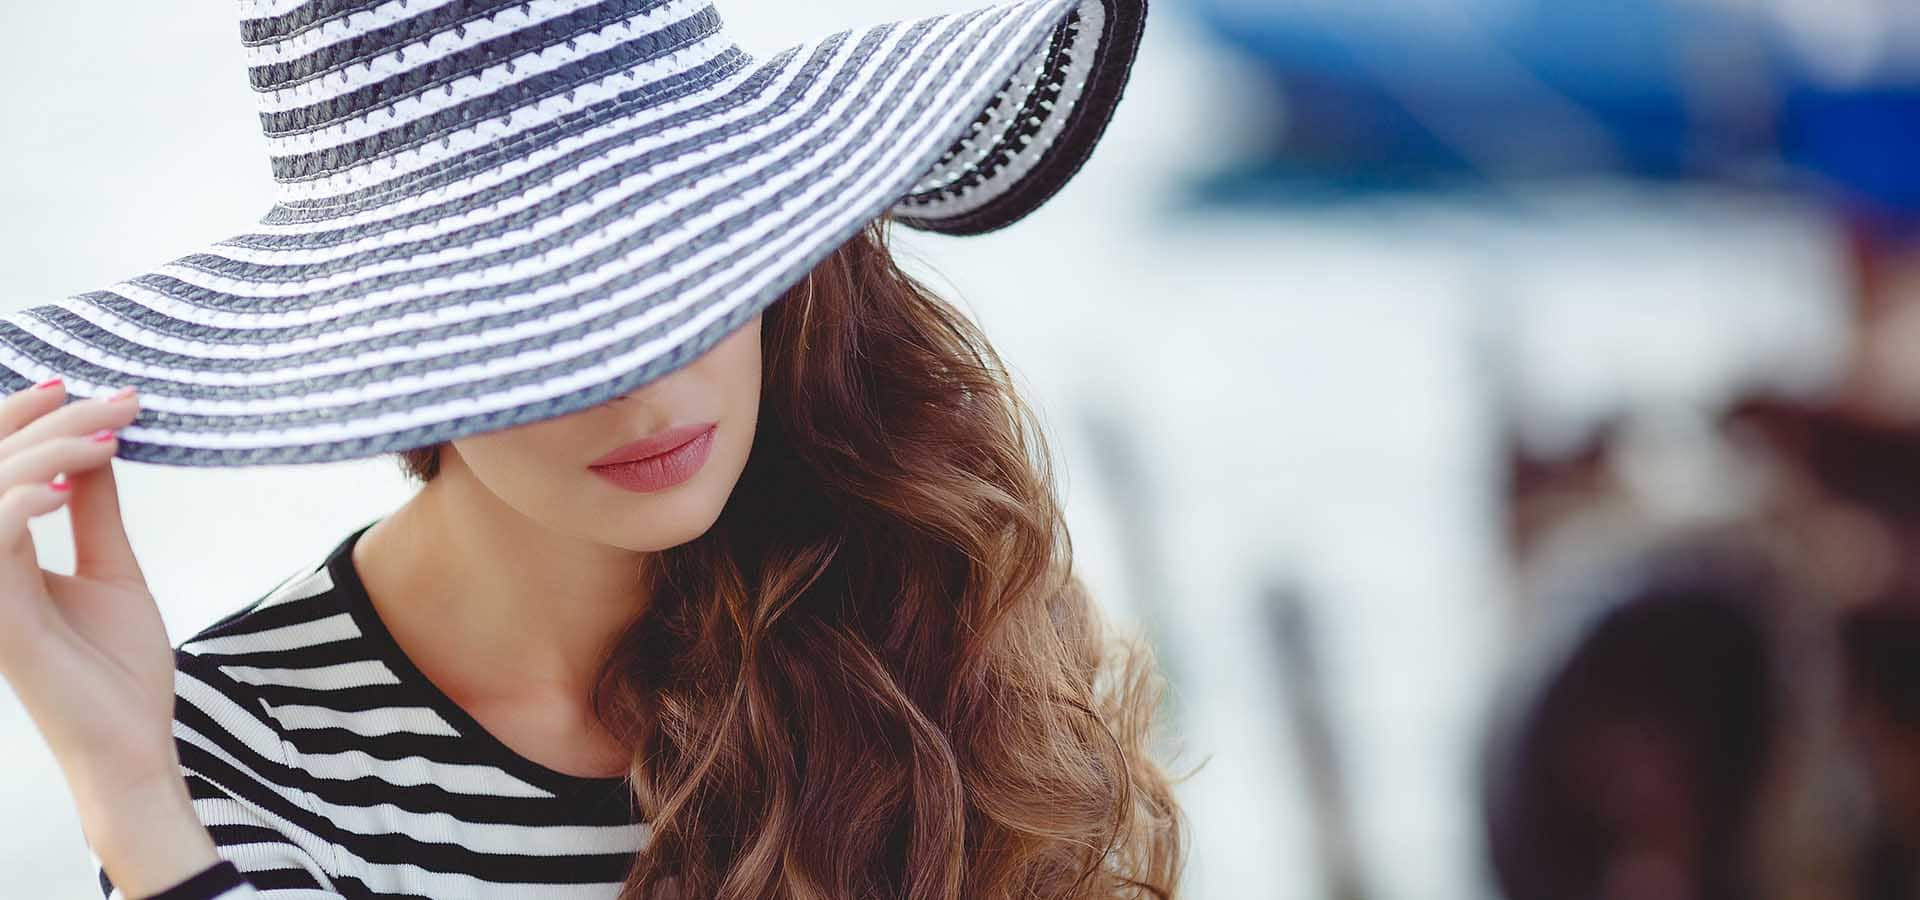 Beautiful young woman model looks, brunette with long curly hair, on his head wearing striped straw hat with a large brim pulled down to his eyes, dressed in a striped summer dress.